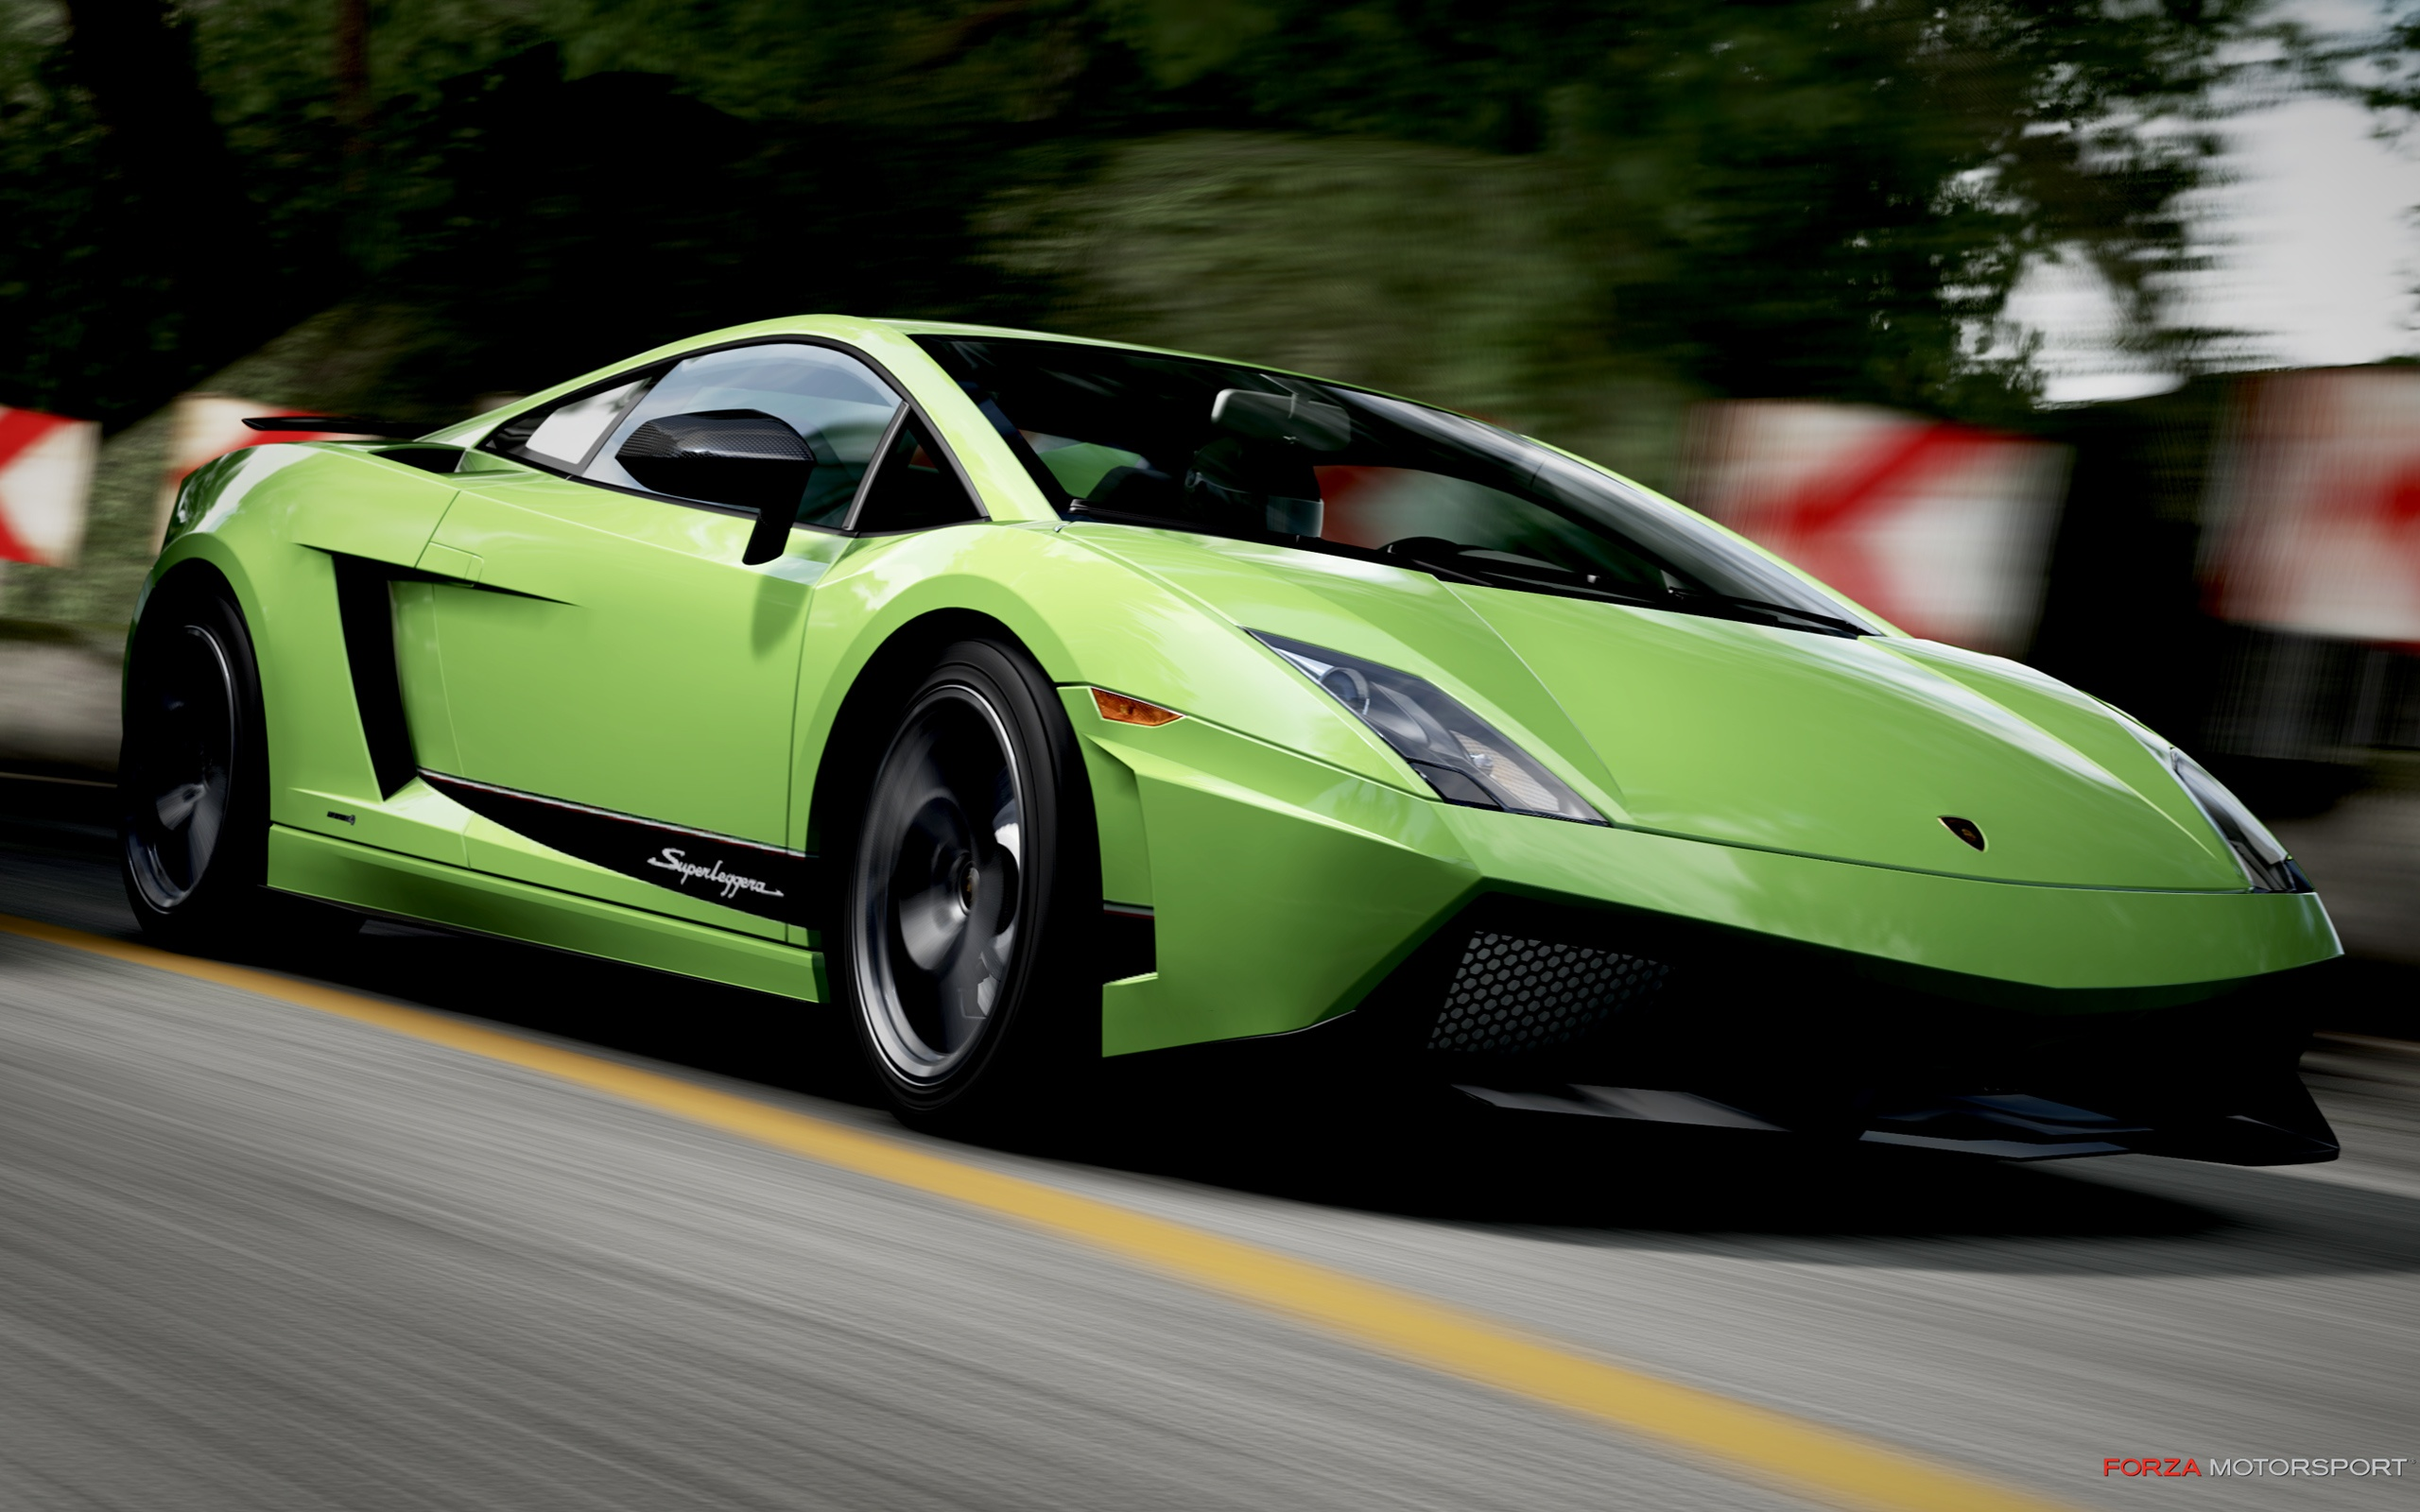 Lamborghini Gallardo In Forza Motorsport 4 Wallpapers In Jpg Format